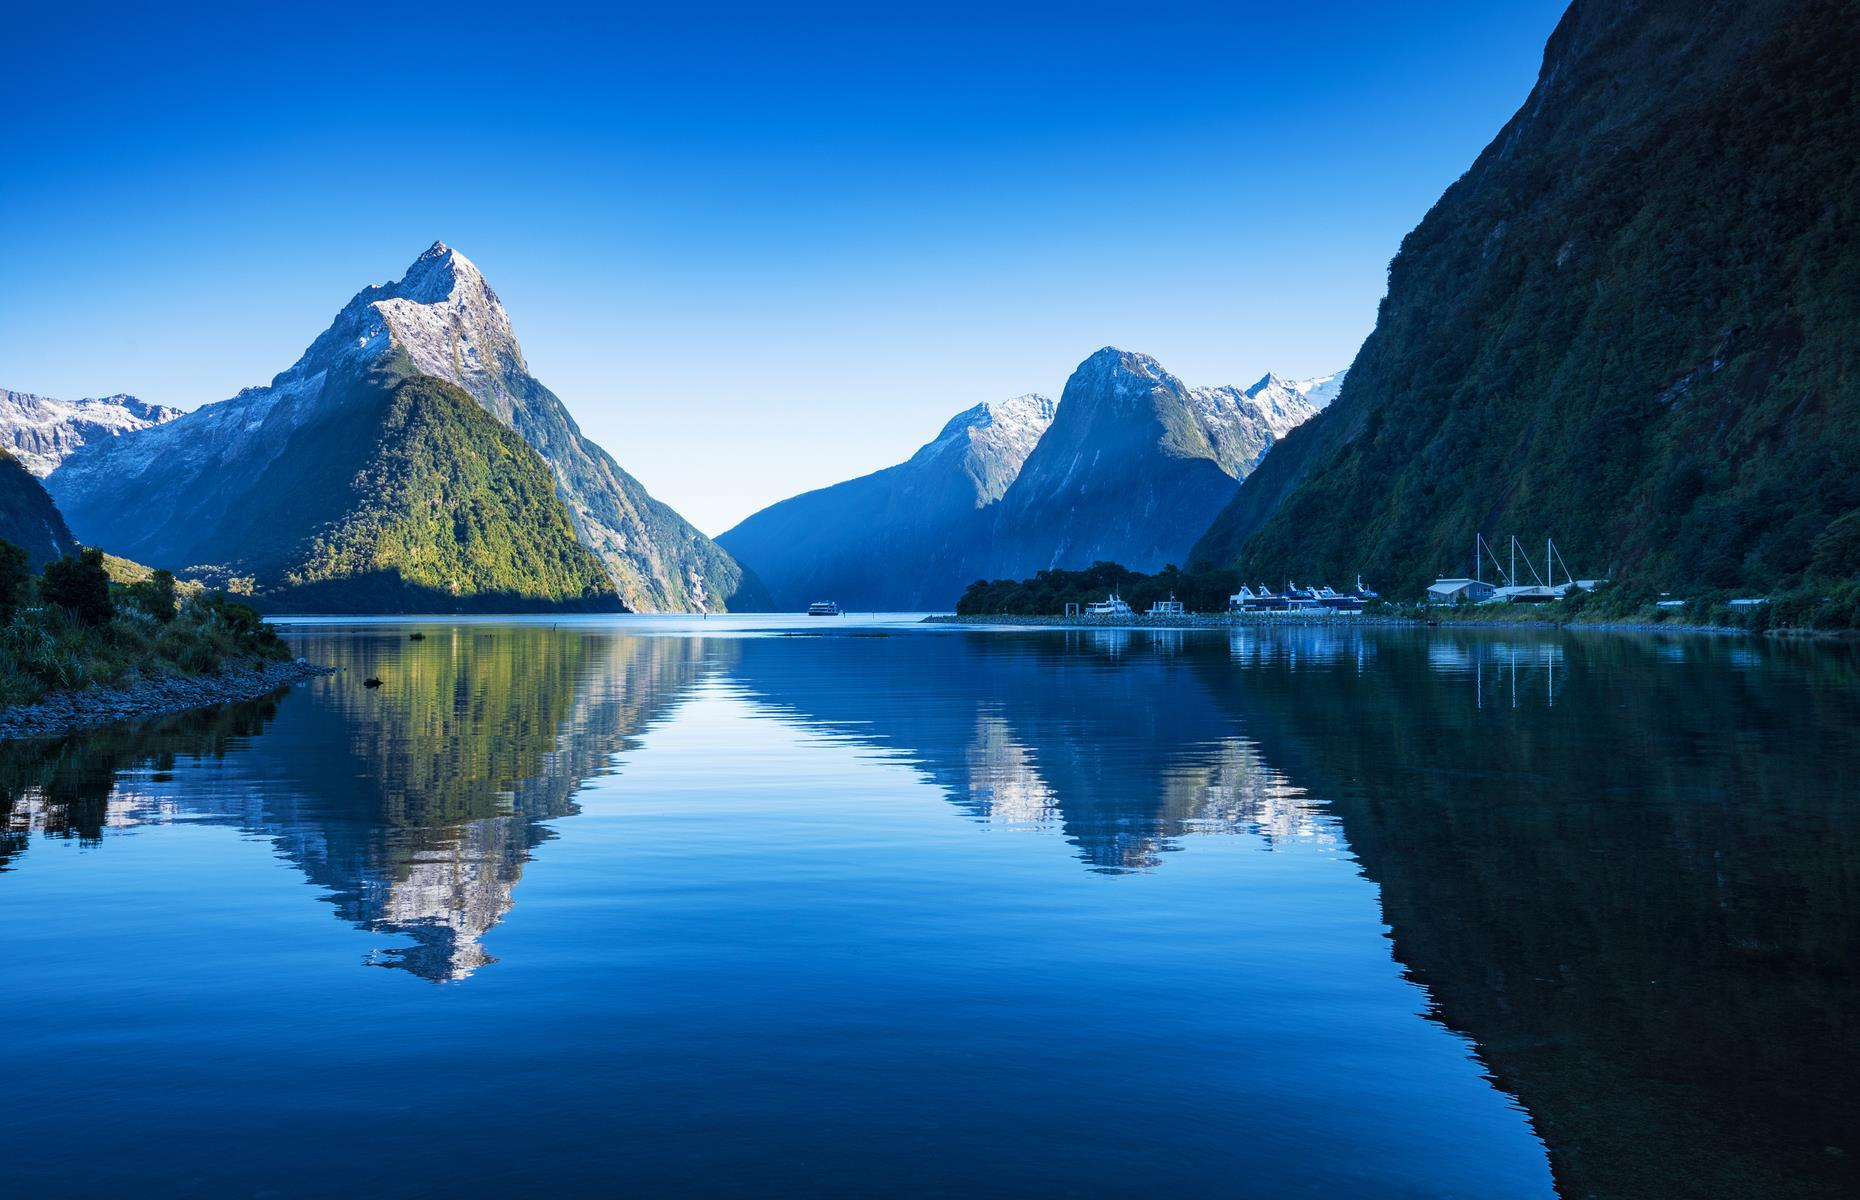 """Slide 9 of 51: With soaring snow-capped mountains, dazzling waters and lush rainforest, the majesty ofNew Zealand's Fiordland National Park gives Norway some stiff competition. The jewel in this magical region in the island's southwest corner isMilford Sound, one of the 14 fiords that fringe the park, measuring up to 1,321 feet (400m) deep. Home to craggypeaks, tumbling cascades and forest-cladcliffs, Rudyard Kipling wasonto something when he called Milford the """"eighth wonder of the world"""". Exploremore of the last unspoiled places on Earth here."""